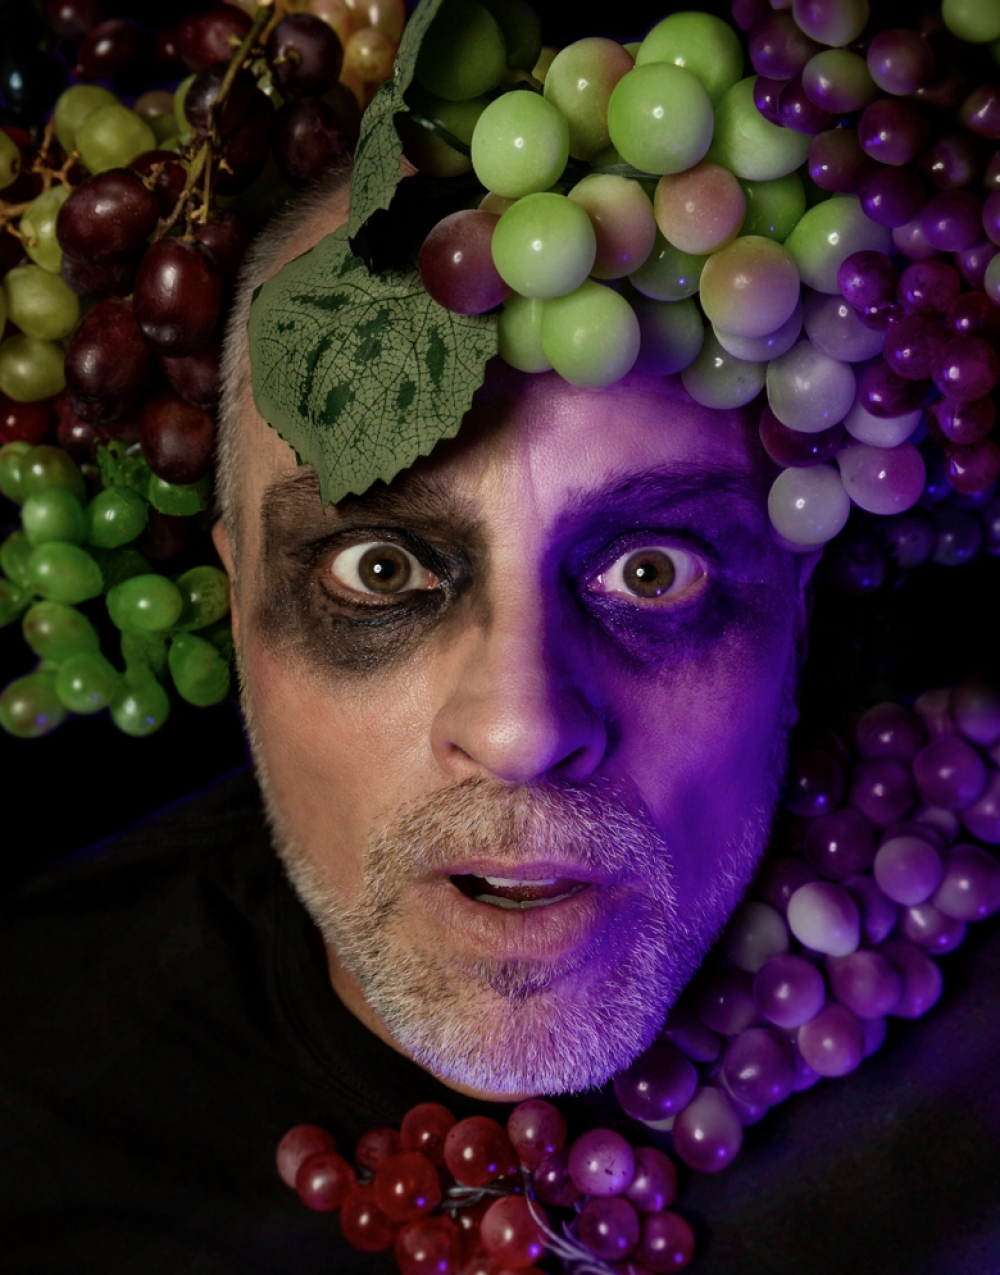 Planet of the Grapes - Live on Stage at The Kraine Theater